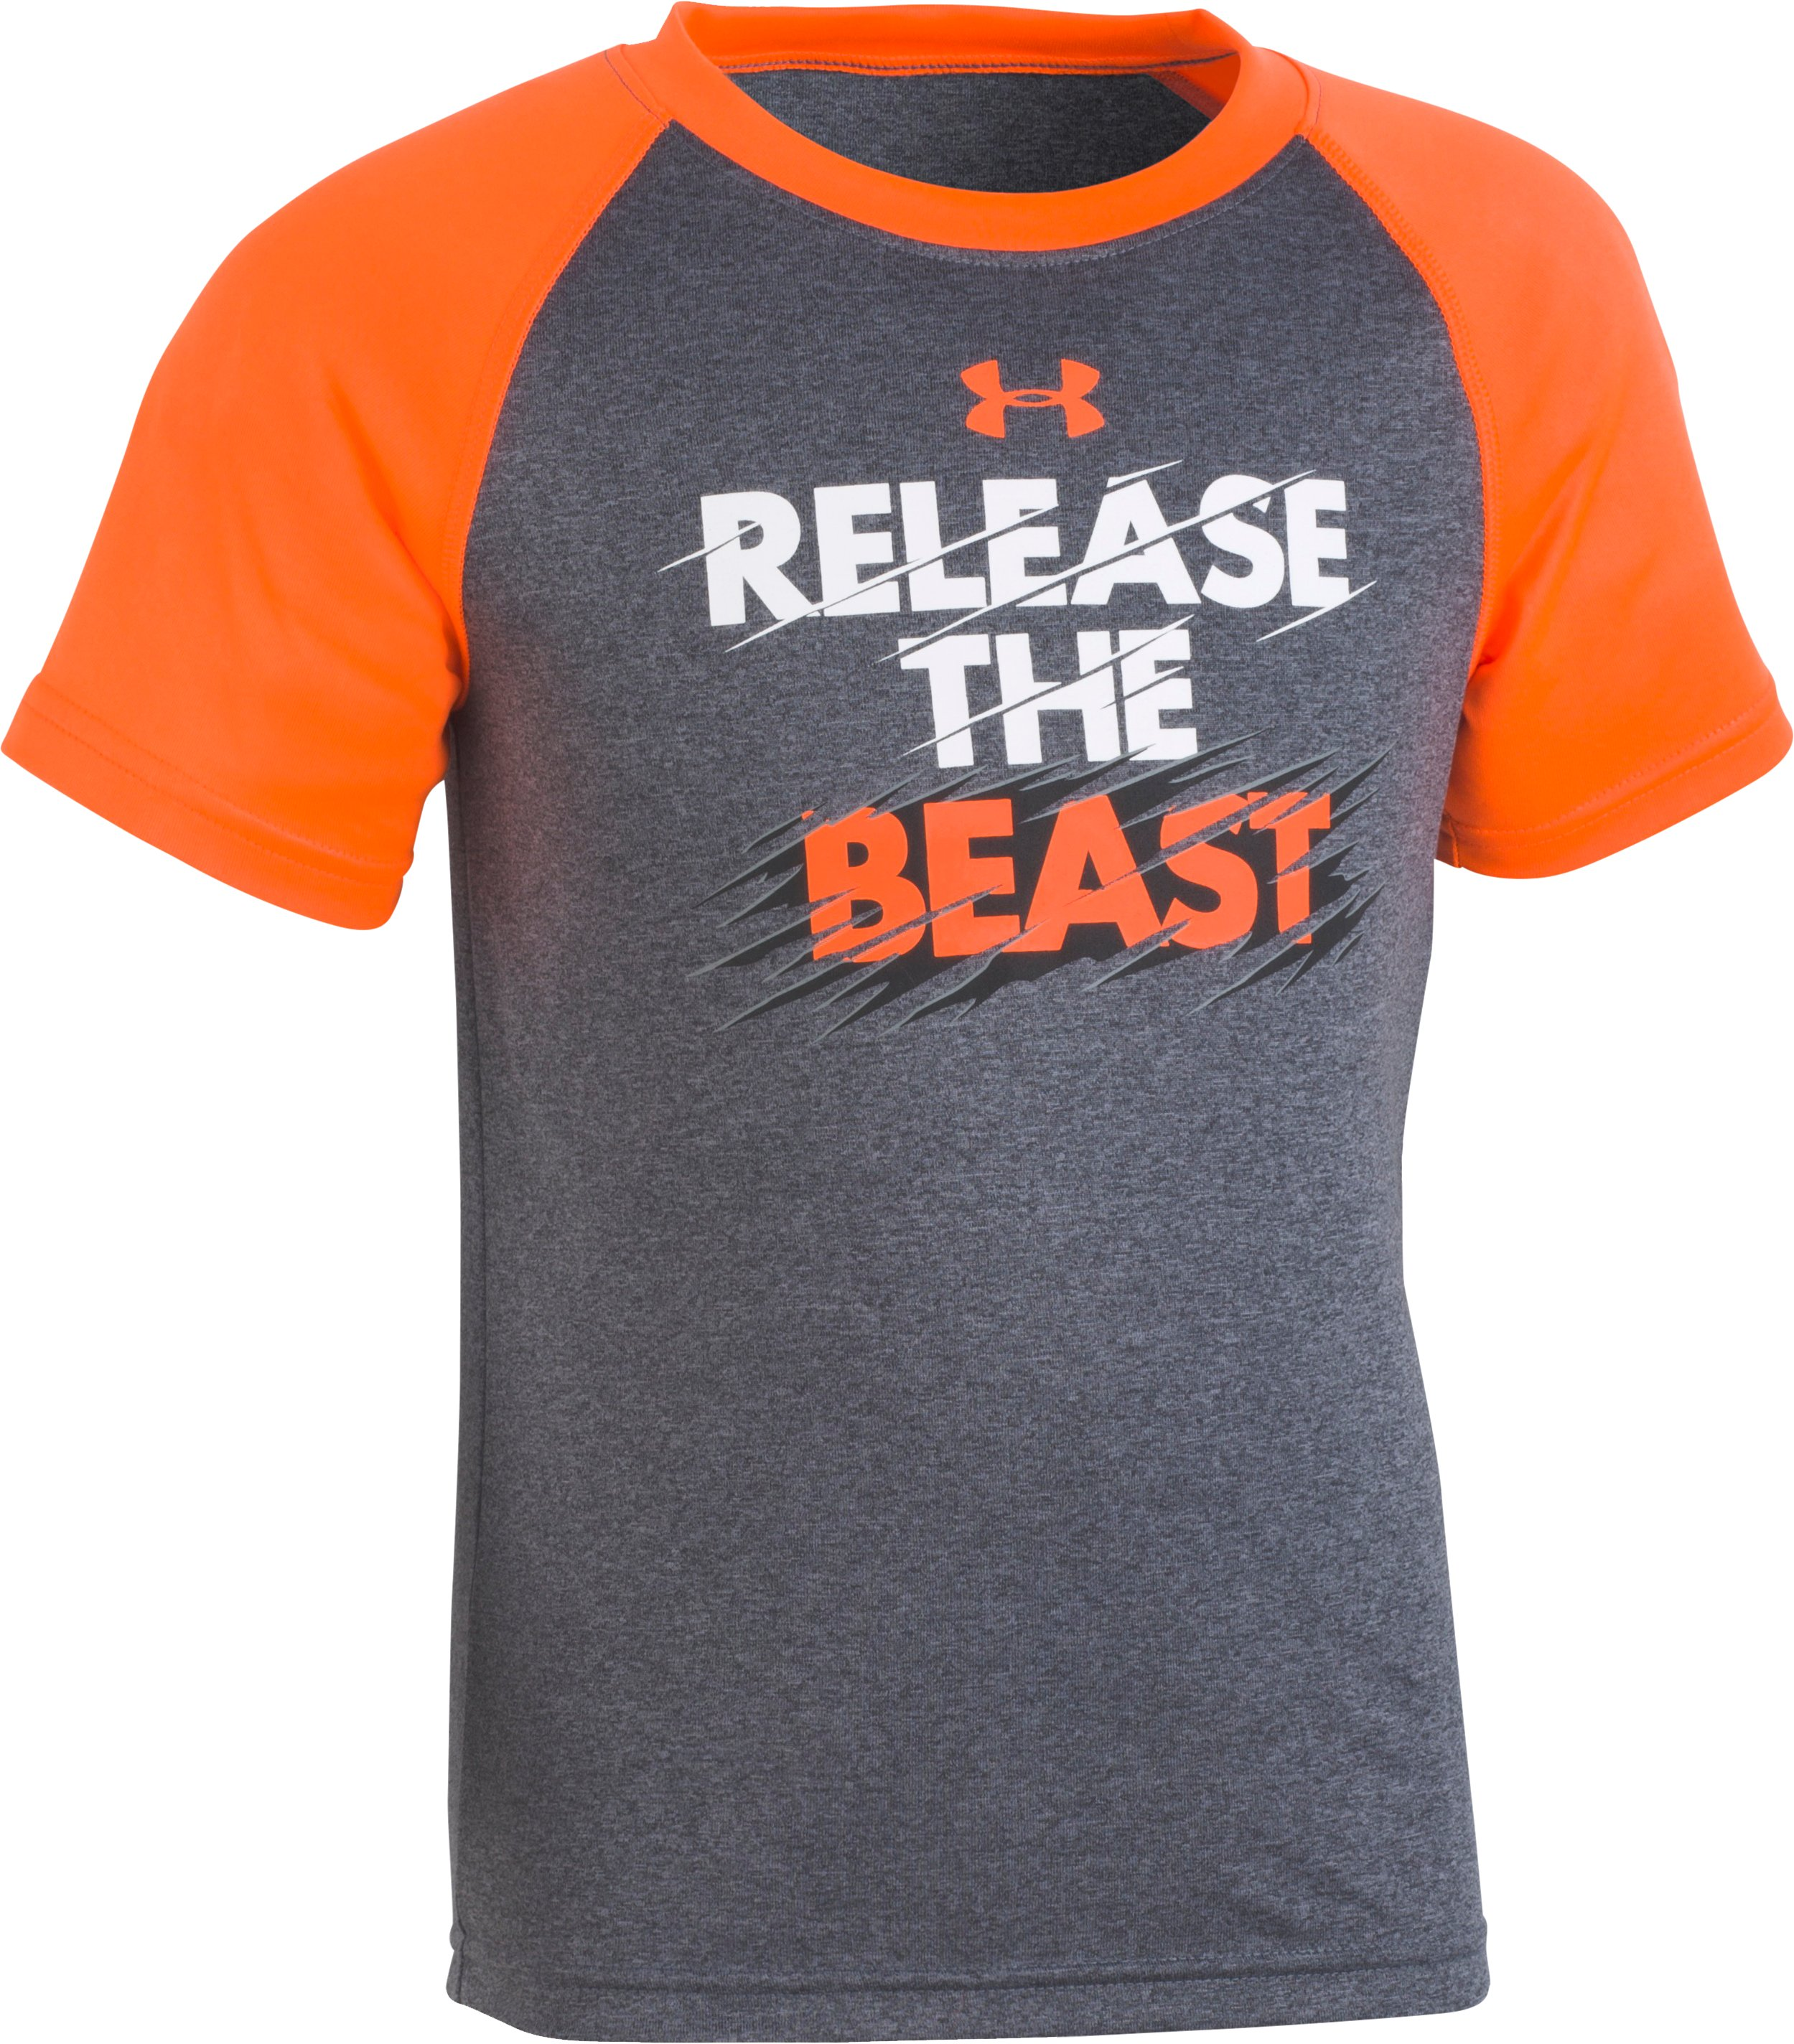 Boys' Infant UA Release The Beast T-Shirt , Charcoal Medium Heather